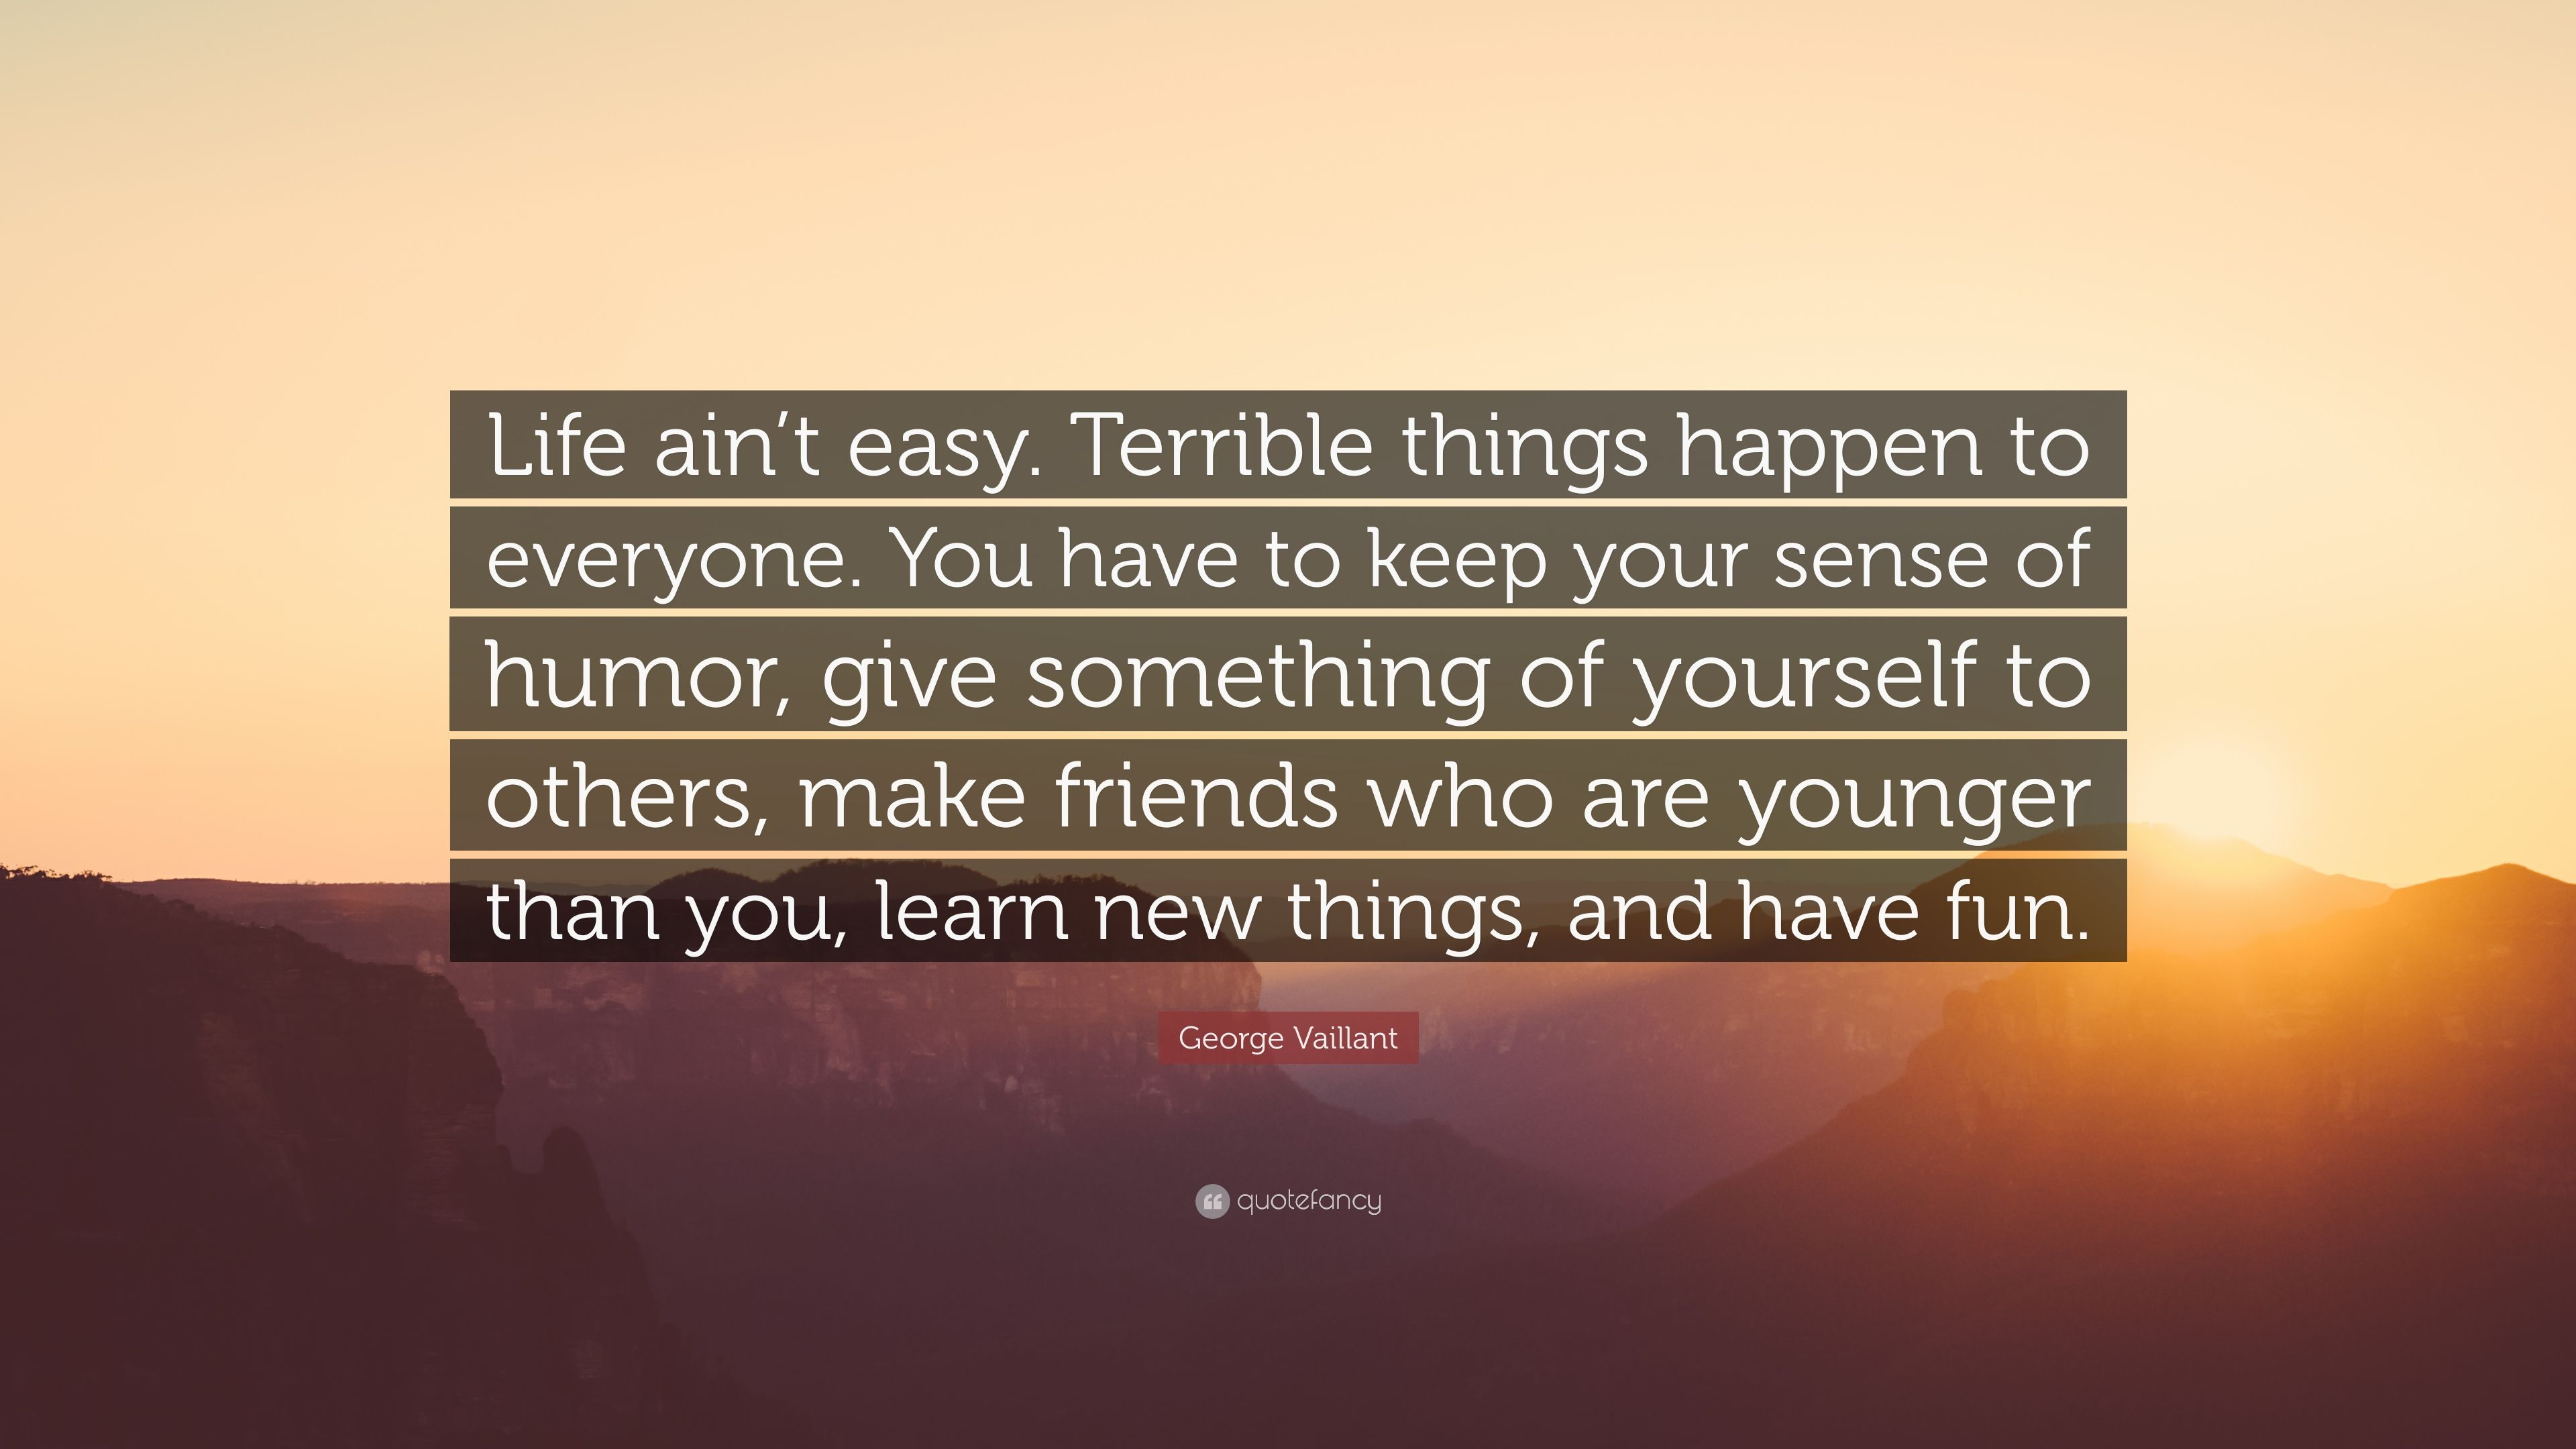 George Vaillant Quote Life Aint Easy Terrible Things Happen To